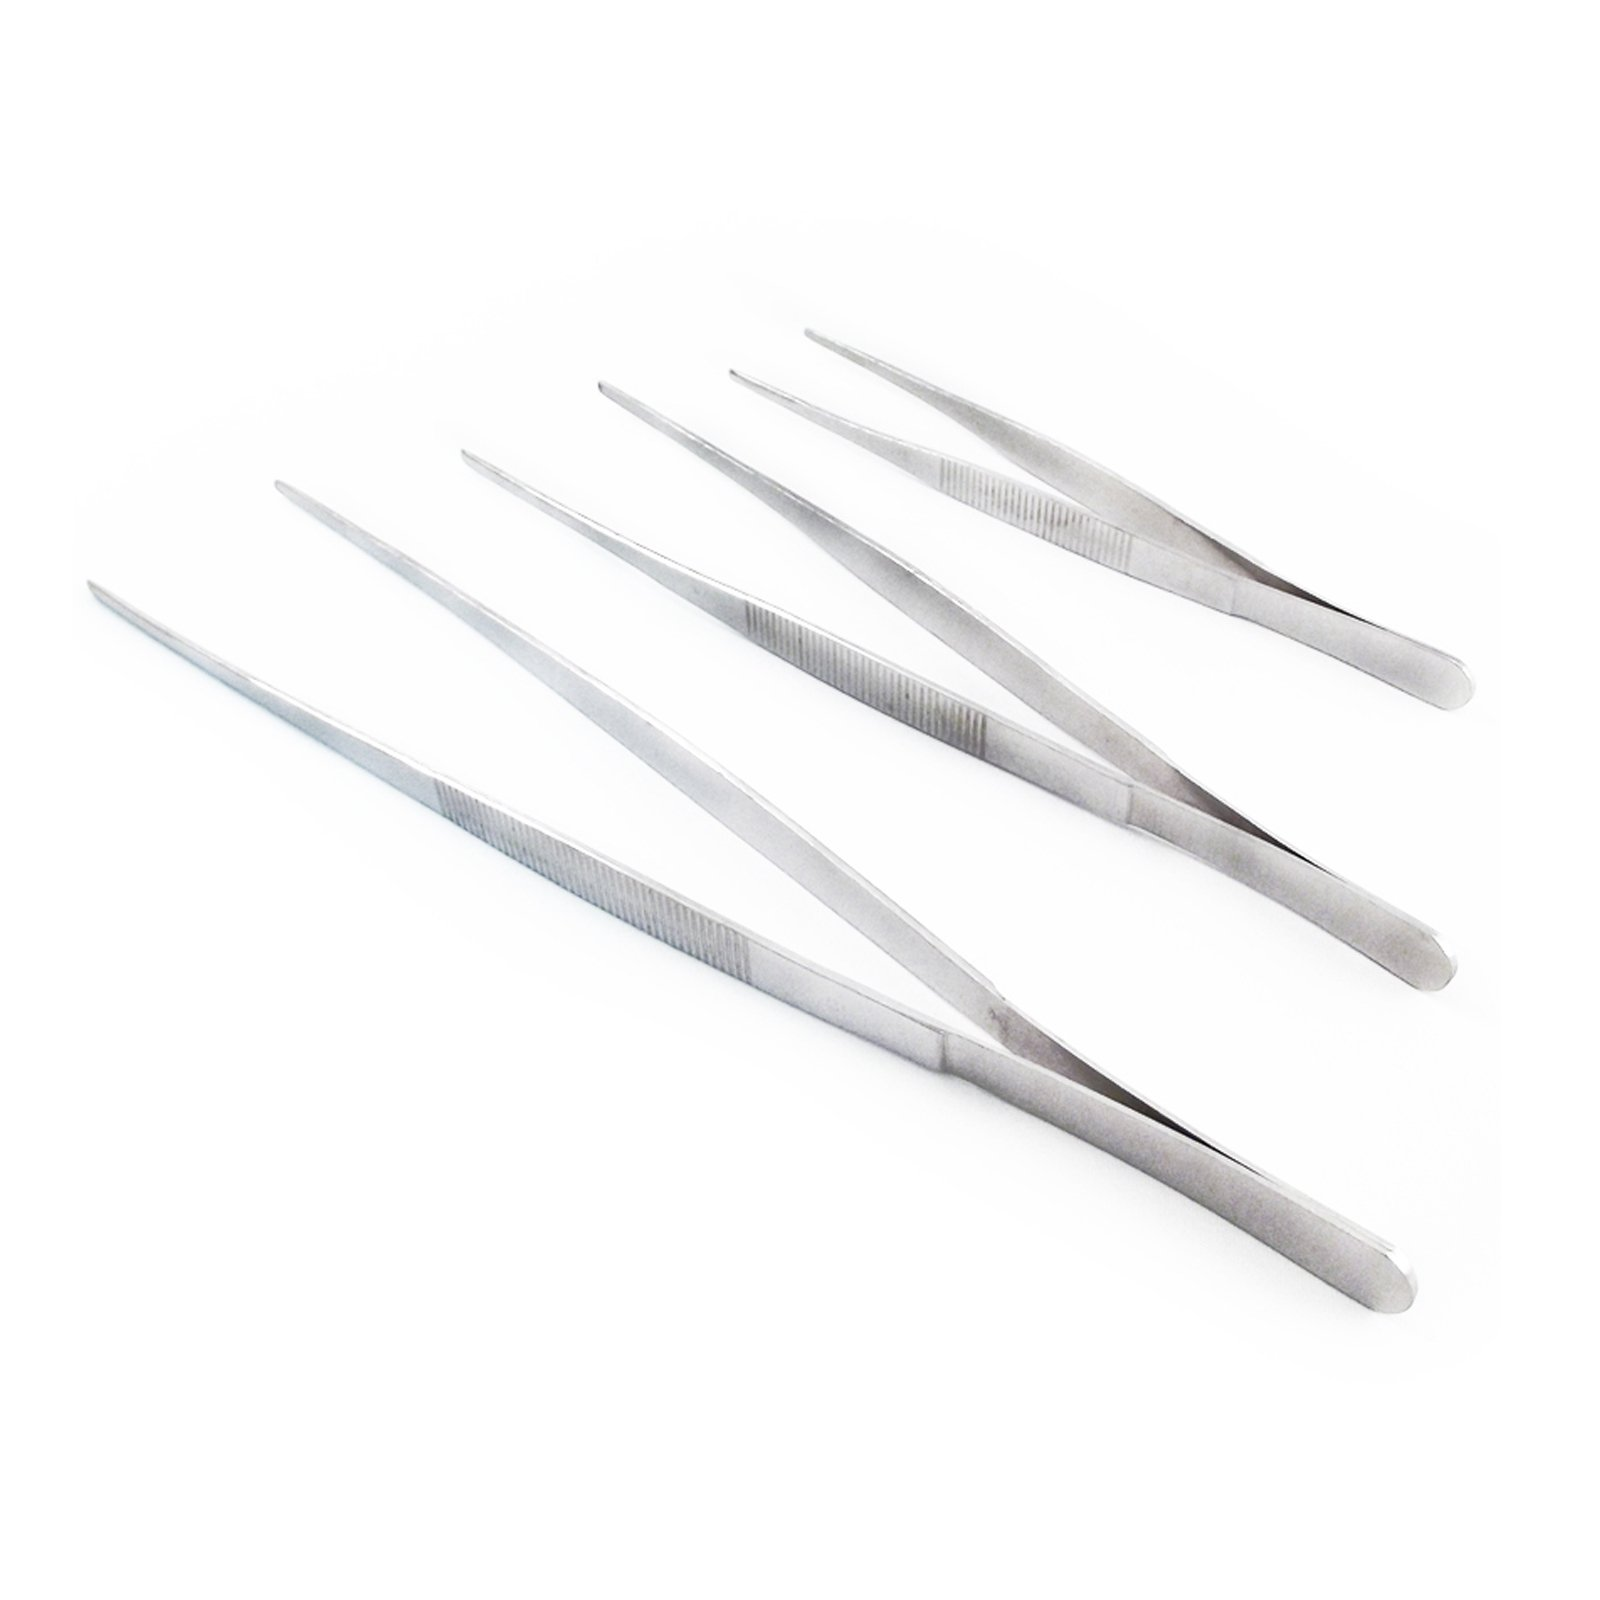 3pc Large Serrated Tweezers Tong Set with Case- 12, 10, and  8 Inch